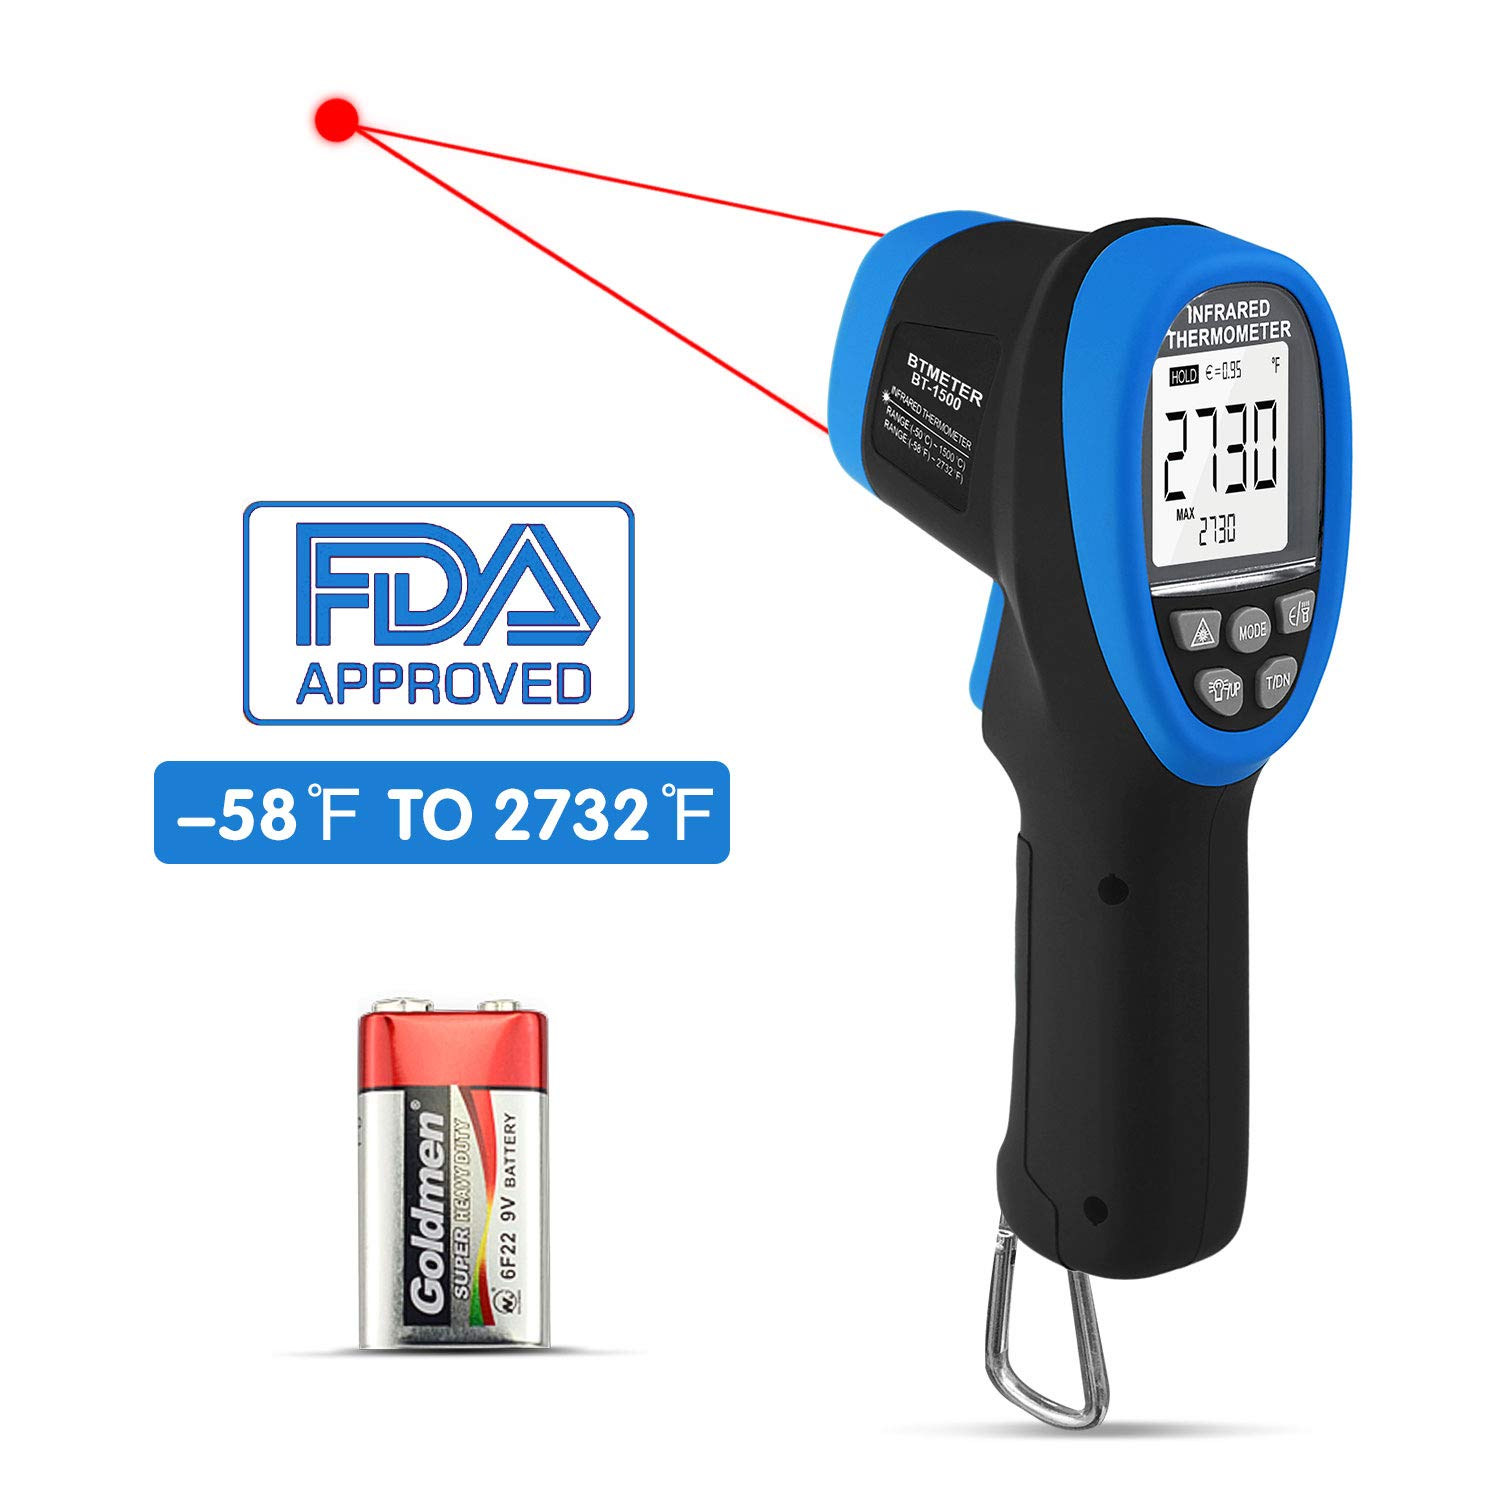 BT-1500 BTMETER BT-1500 Infrared Thermometer Gun 30 1 Digital High Temp Pyrometer, IR Temperature Tester -58℉ - 2732℉ (-50℃ to 1500℃) Dual Laser Pointerswith Flashlight FDA for Kiln Forge Foundry Casting